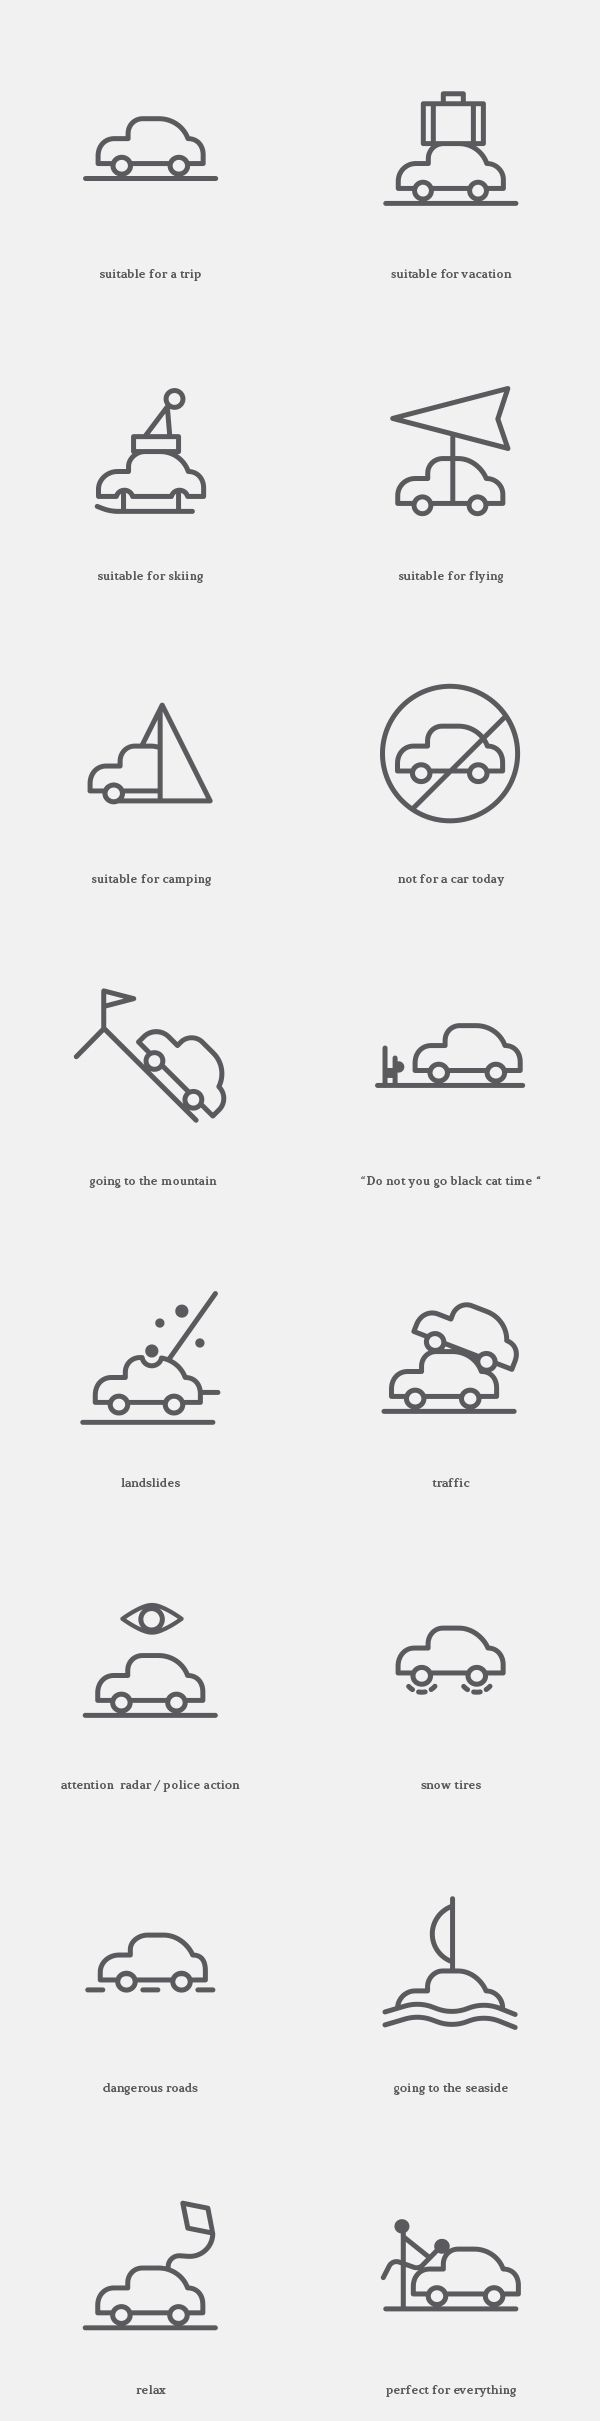 Free Icons for the Weather Situations by s-pov spovv, via Behance